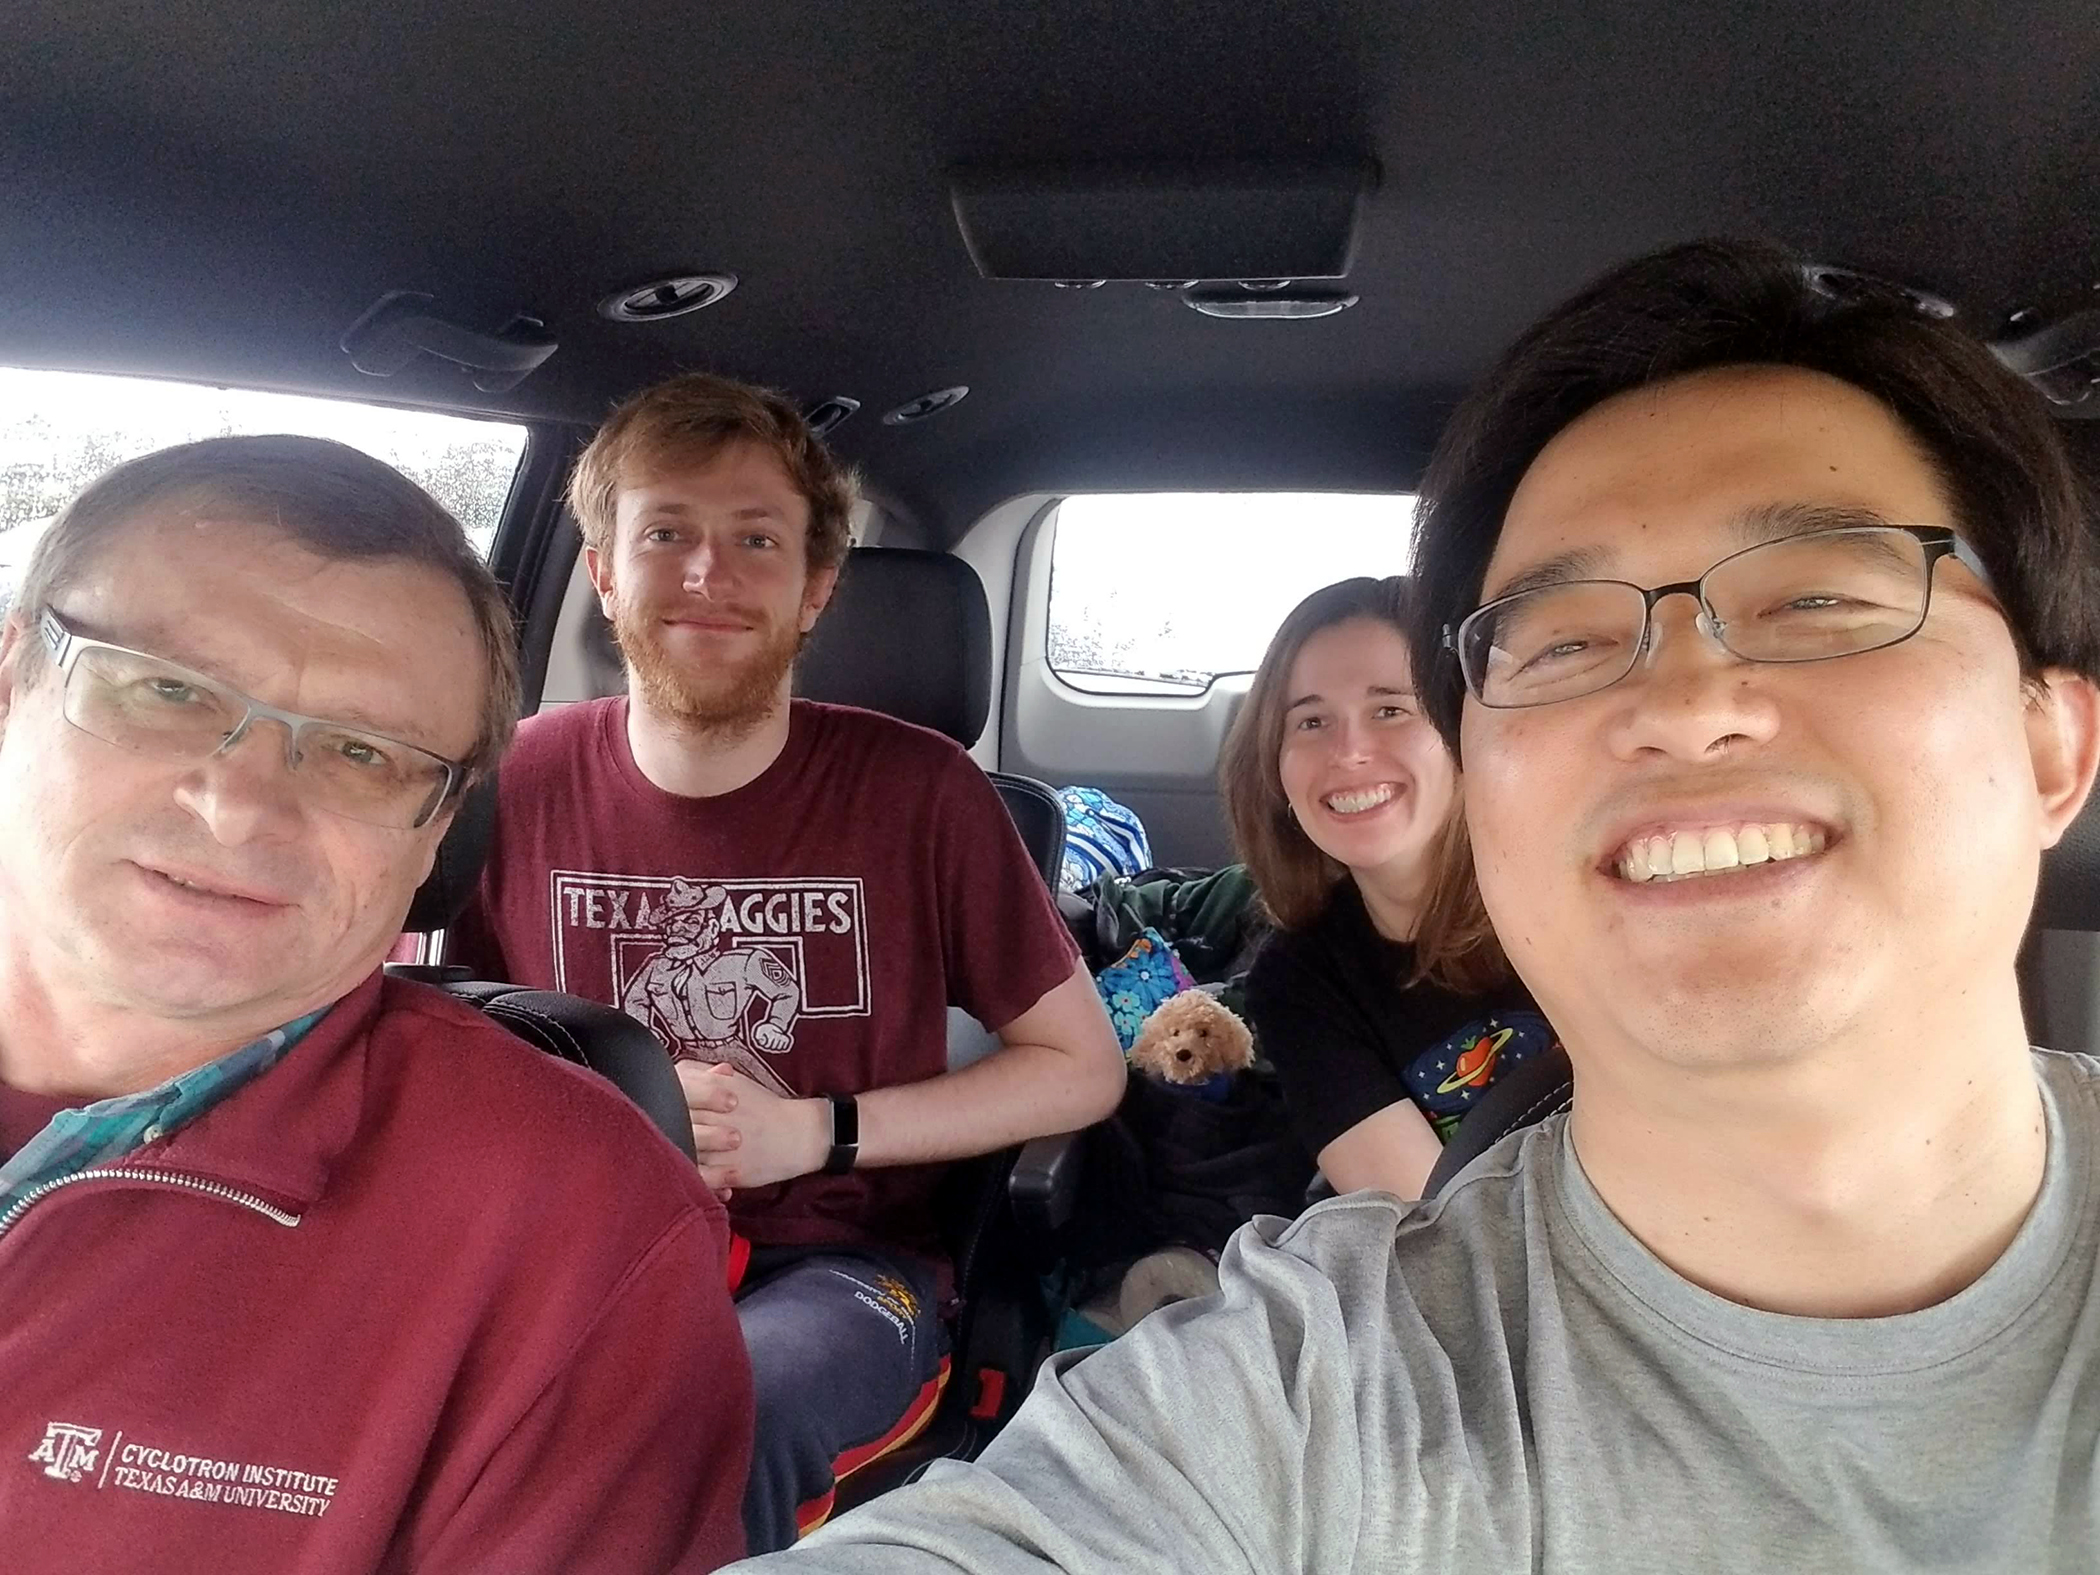 Texas A&M University's Texas Active Target, or TexAT, particle detector collaboration is all smiles as they prepare to return to College Station following a successful trip to Ohio University's John E. Edwards Accelerator Laboratory